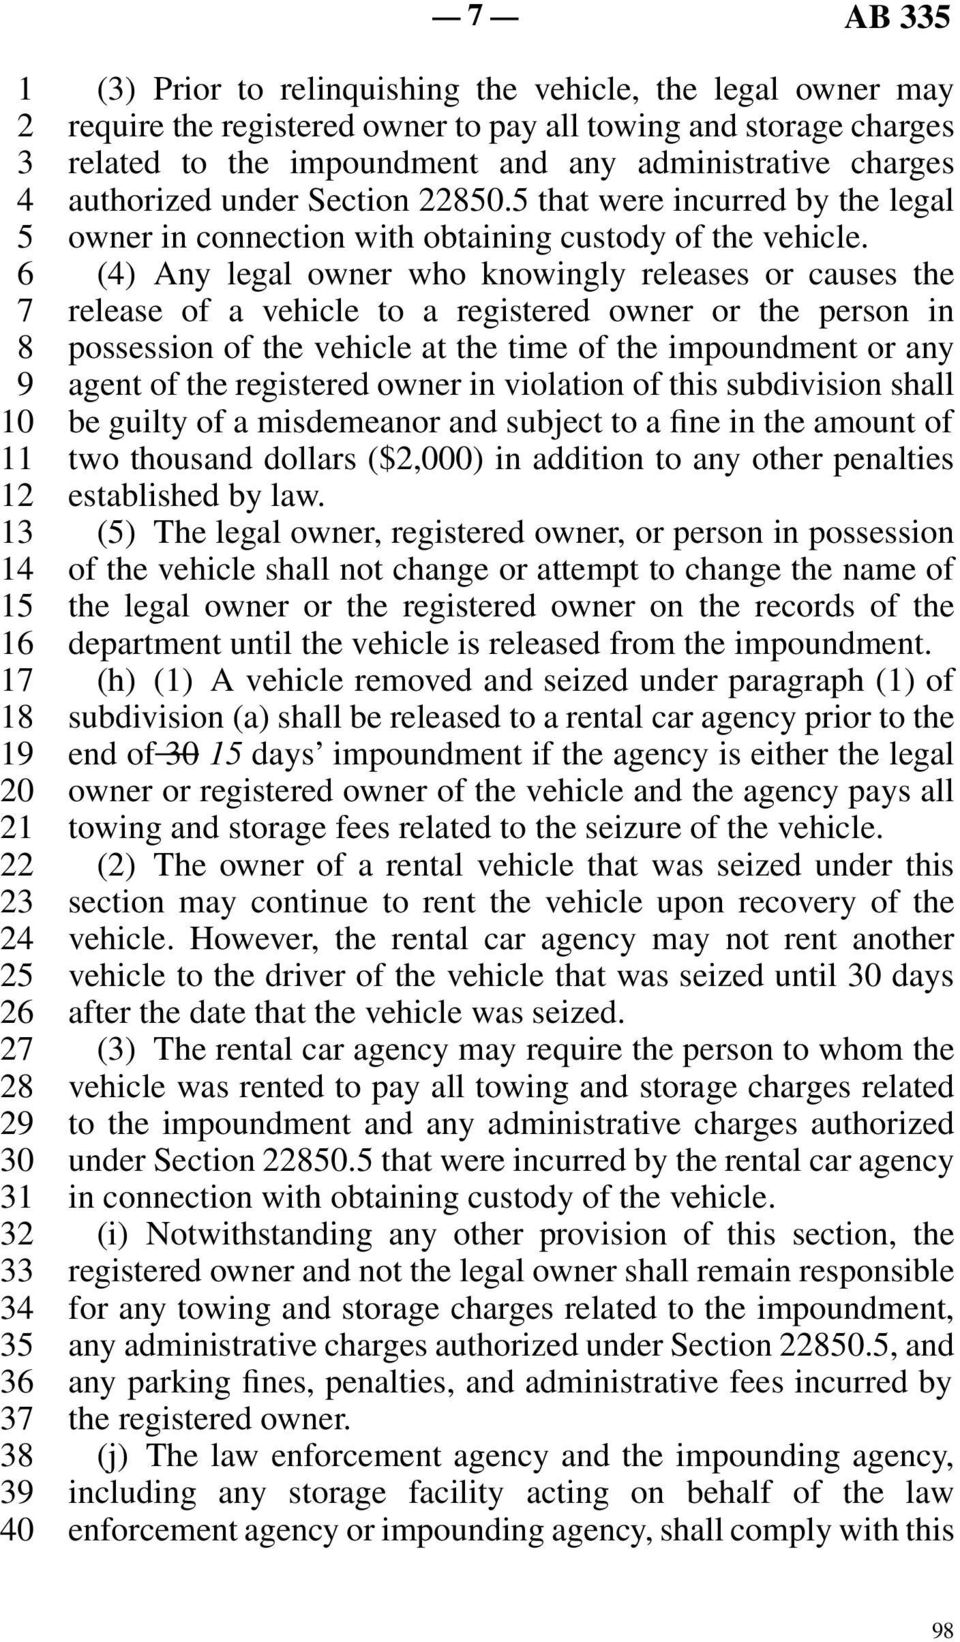 line 6 (4) Any legal owner who knowingly releases or causes the line 7 release of a vehicle to a registered owner or the person in line 8 possession of the vehicle at the time of the impoundment or